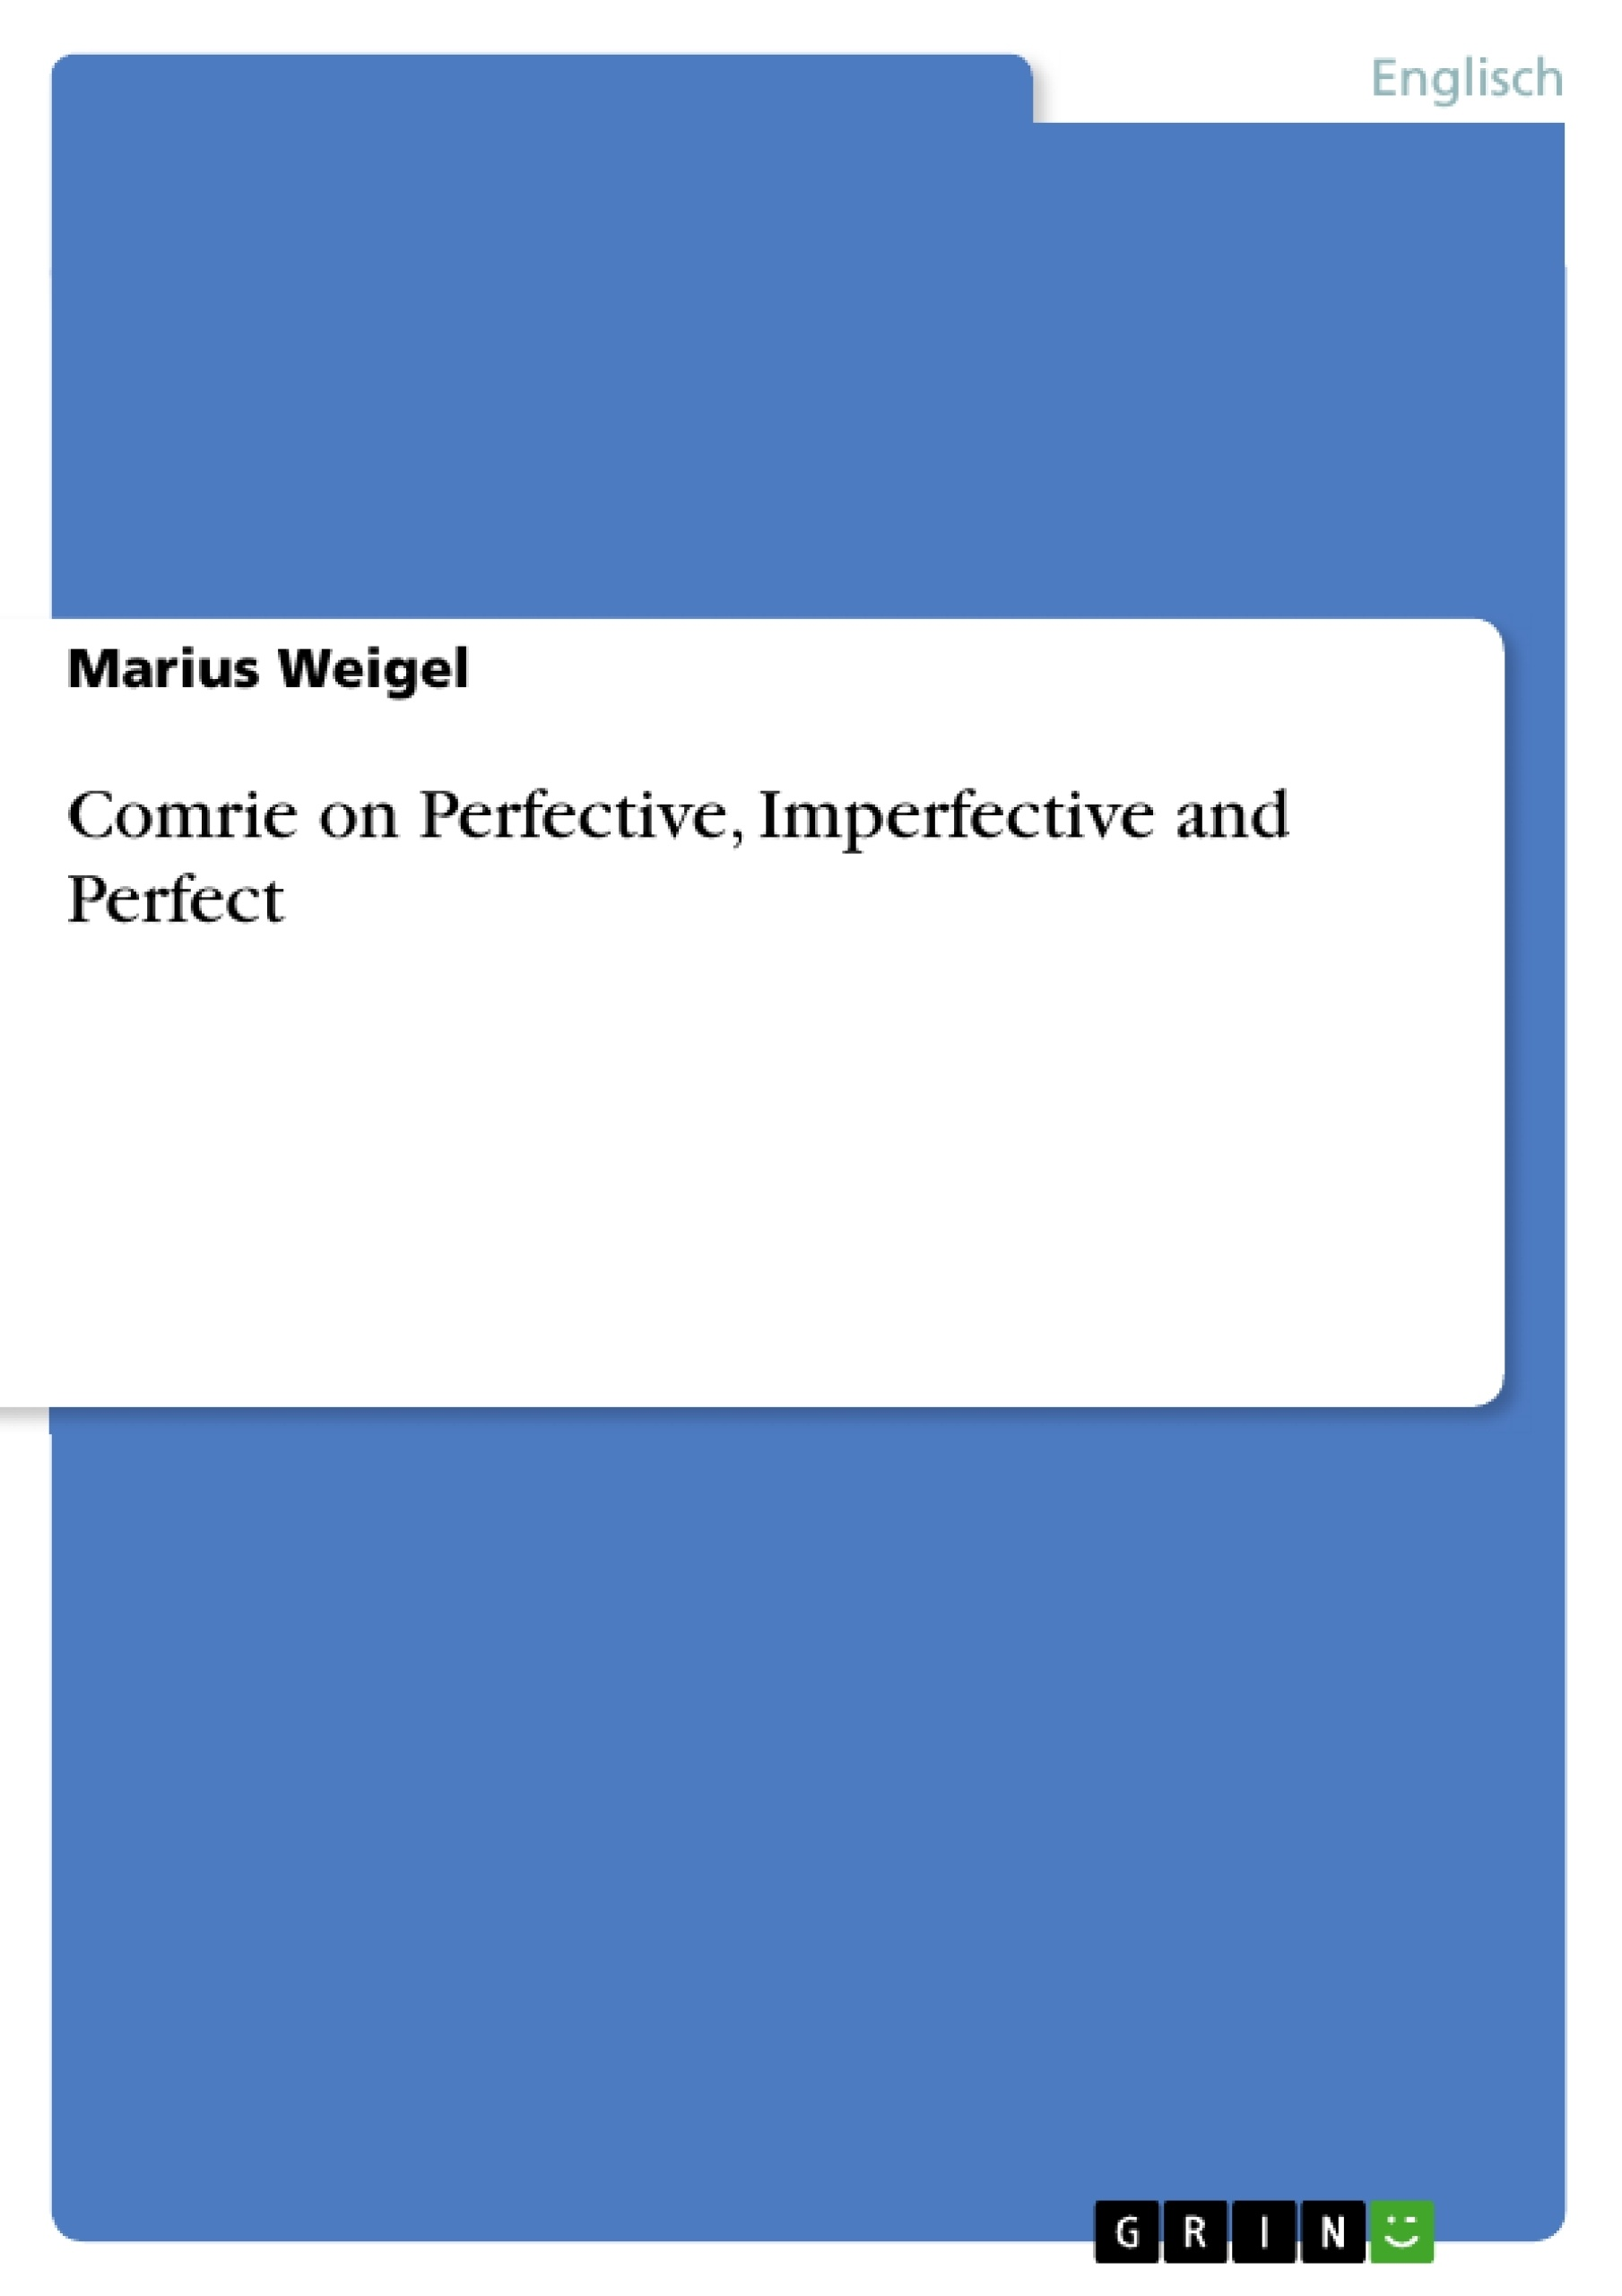 Comrie on Perfective, Imperfective and Perfect | Masterarbeit ...